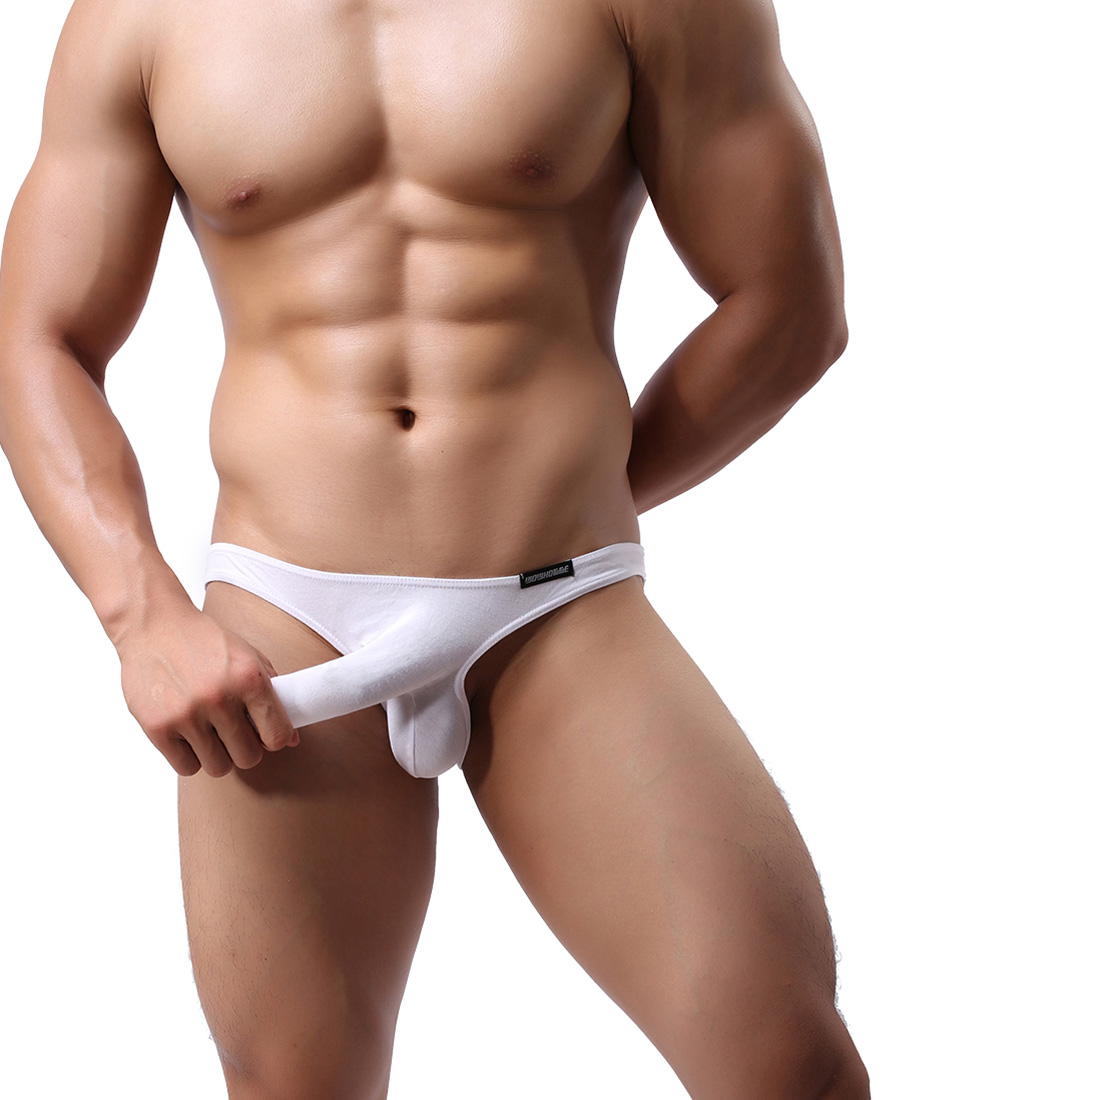 Men's Sexy Lingerie Underwear Modal Triangle Pants Shorts with Penis Sheath WH8 White XL